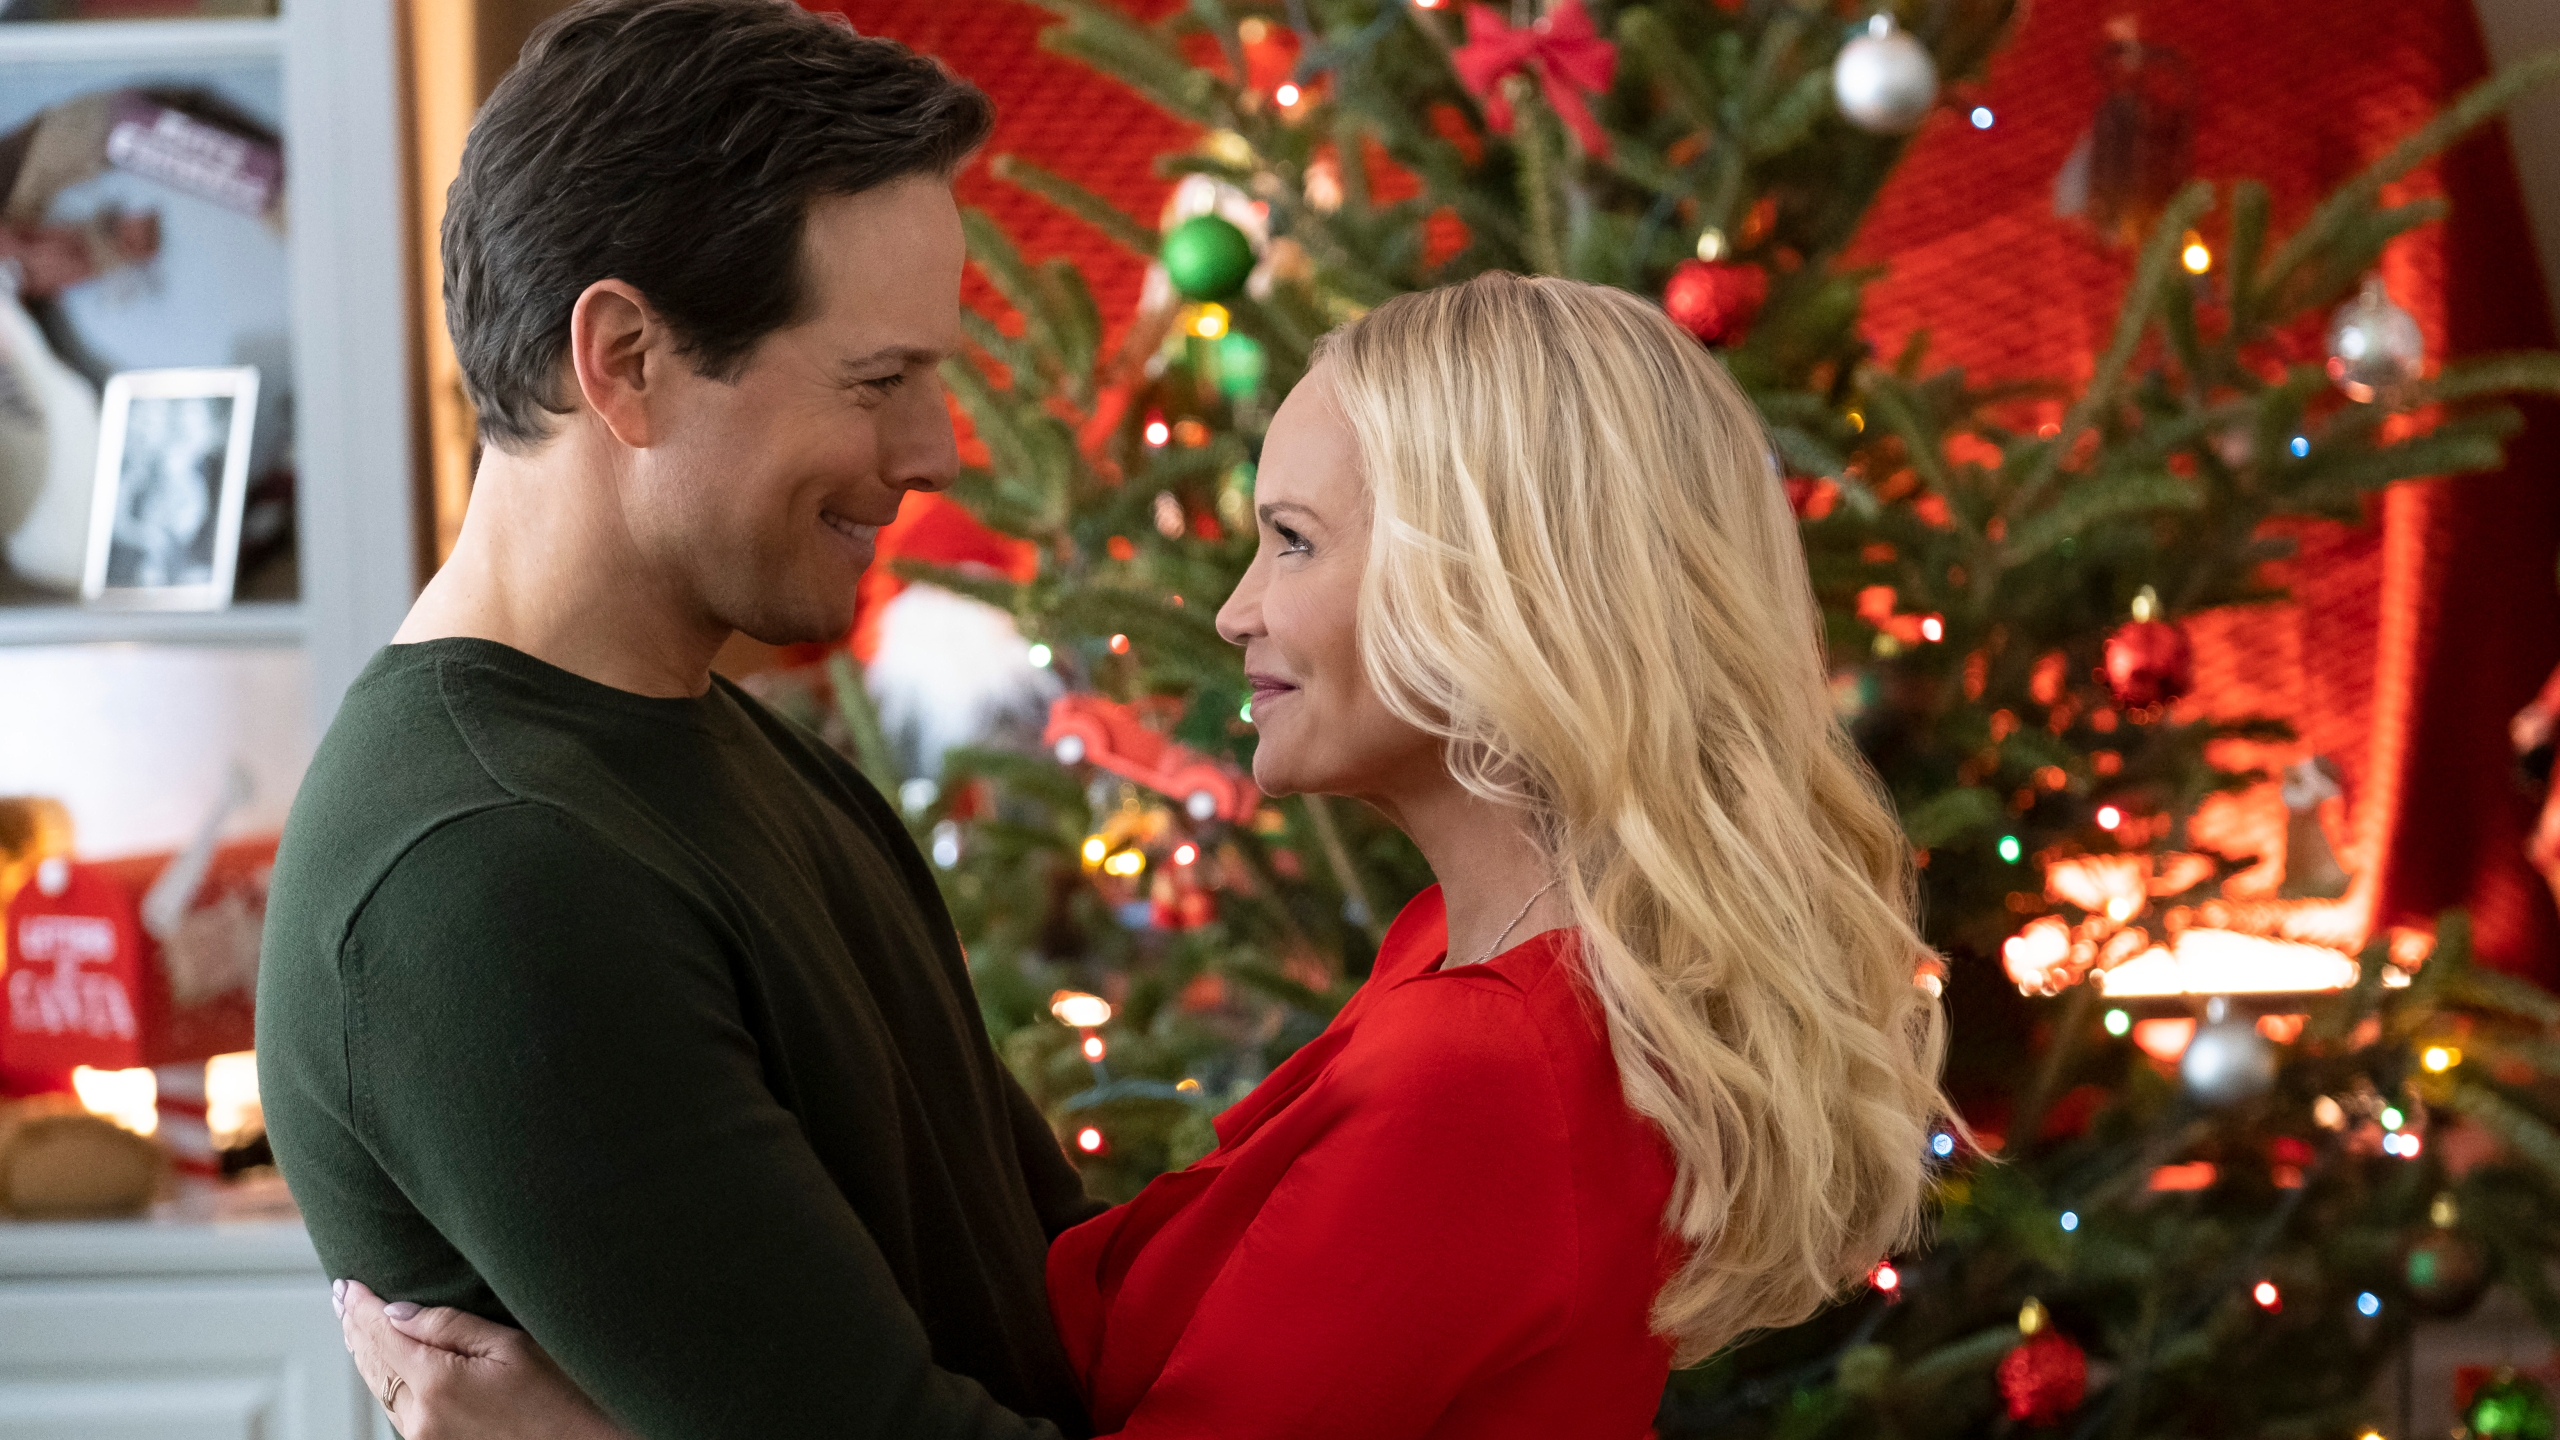 Volunteer On Christmas Day 2020 Near Me Hallmark brings back popular holiday movie special, announces